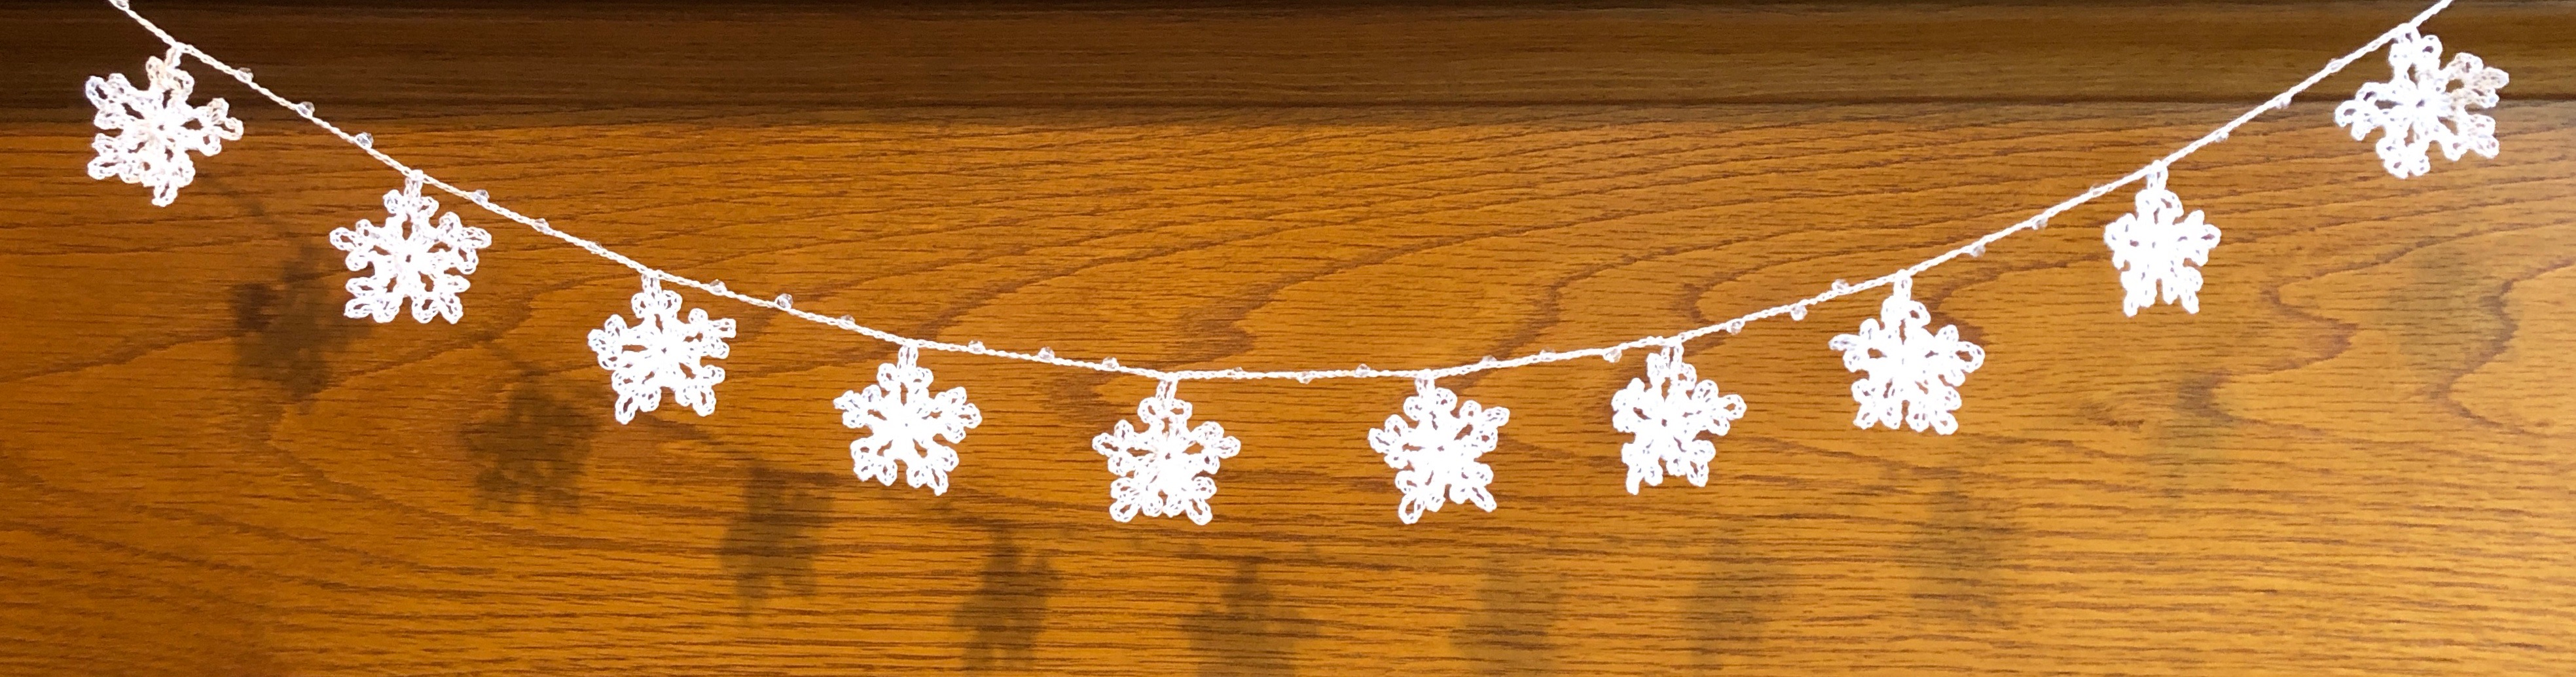 Handmade, crocheted, white cotton snowflakes and clear crystal style bead garland.